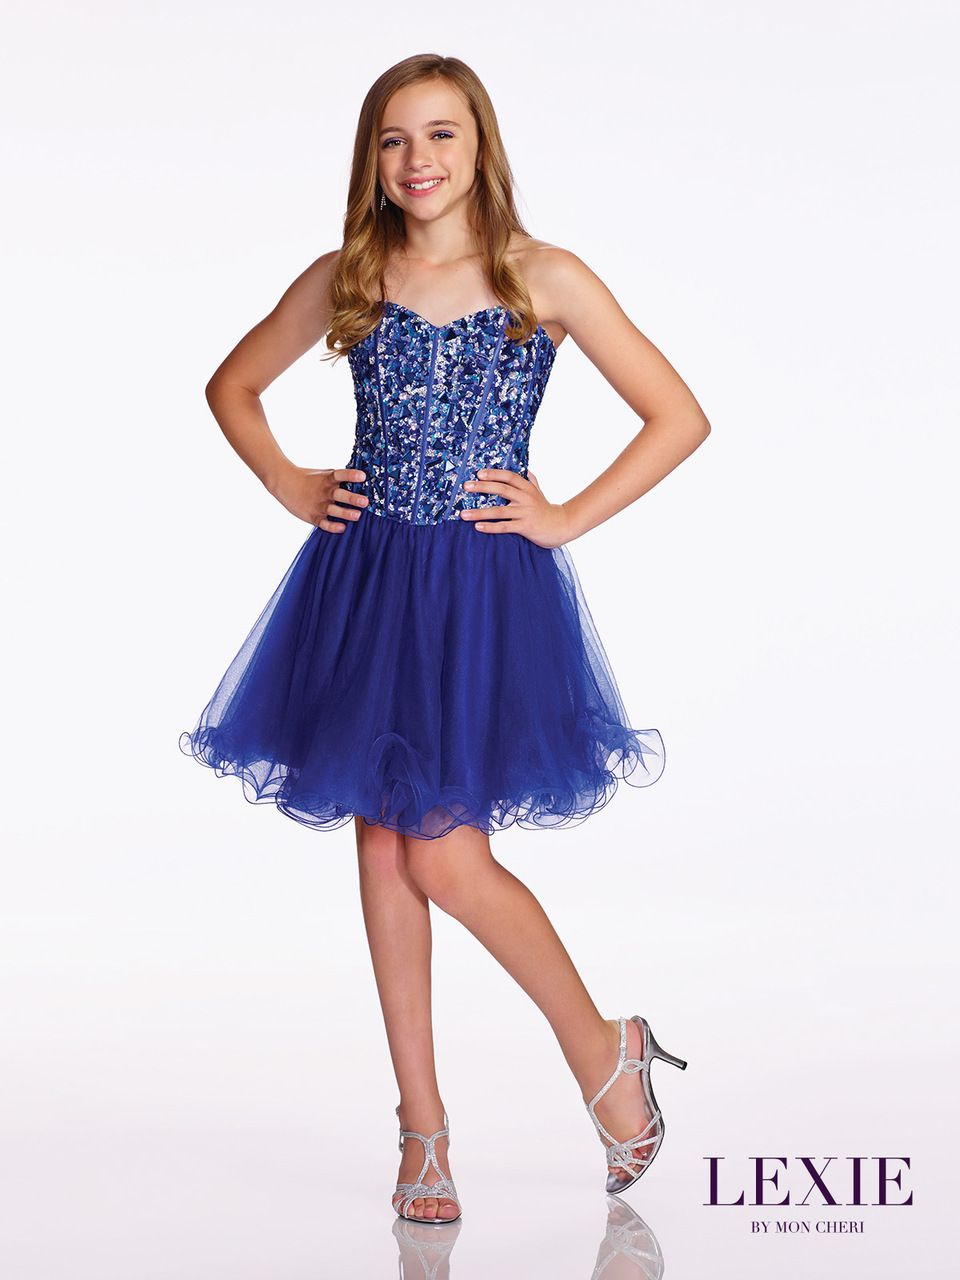 party dresses for girls 7-16 World dresses | Girls 2016 ...